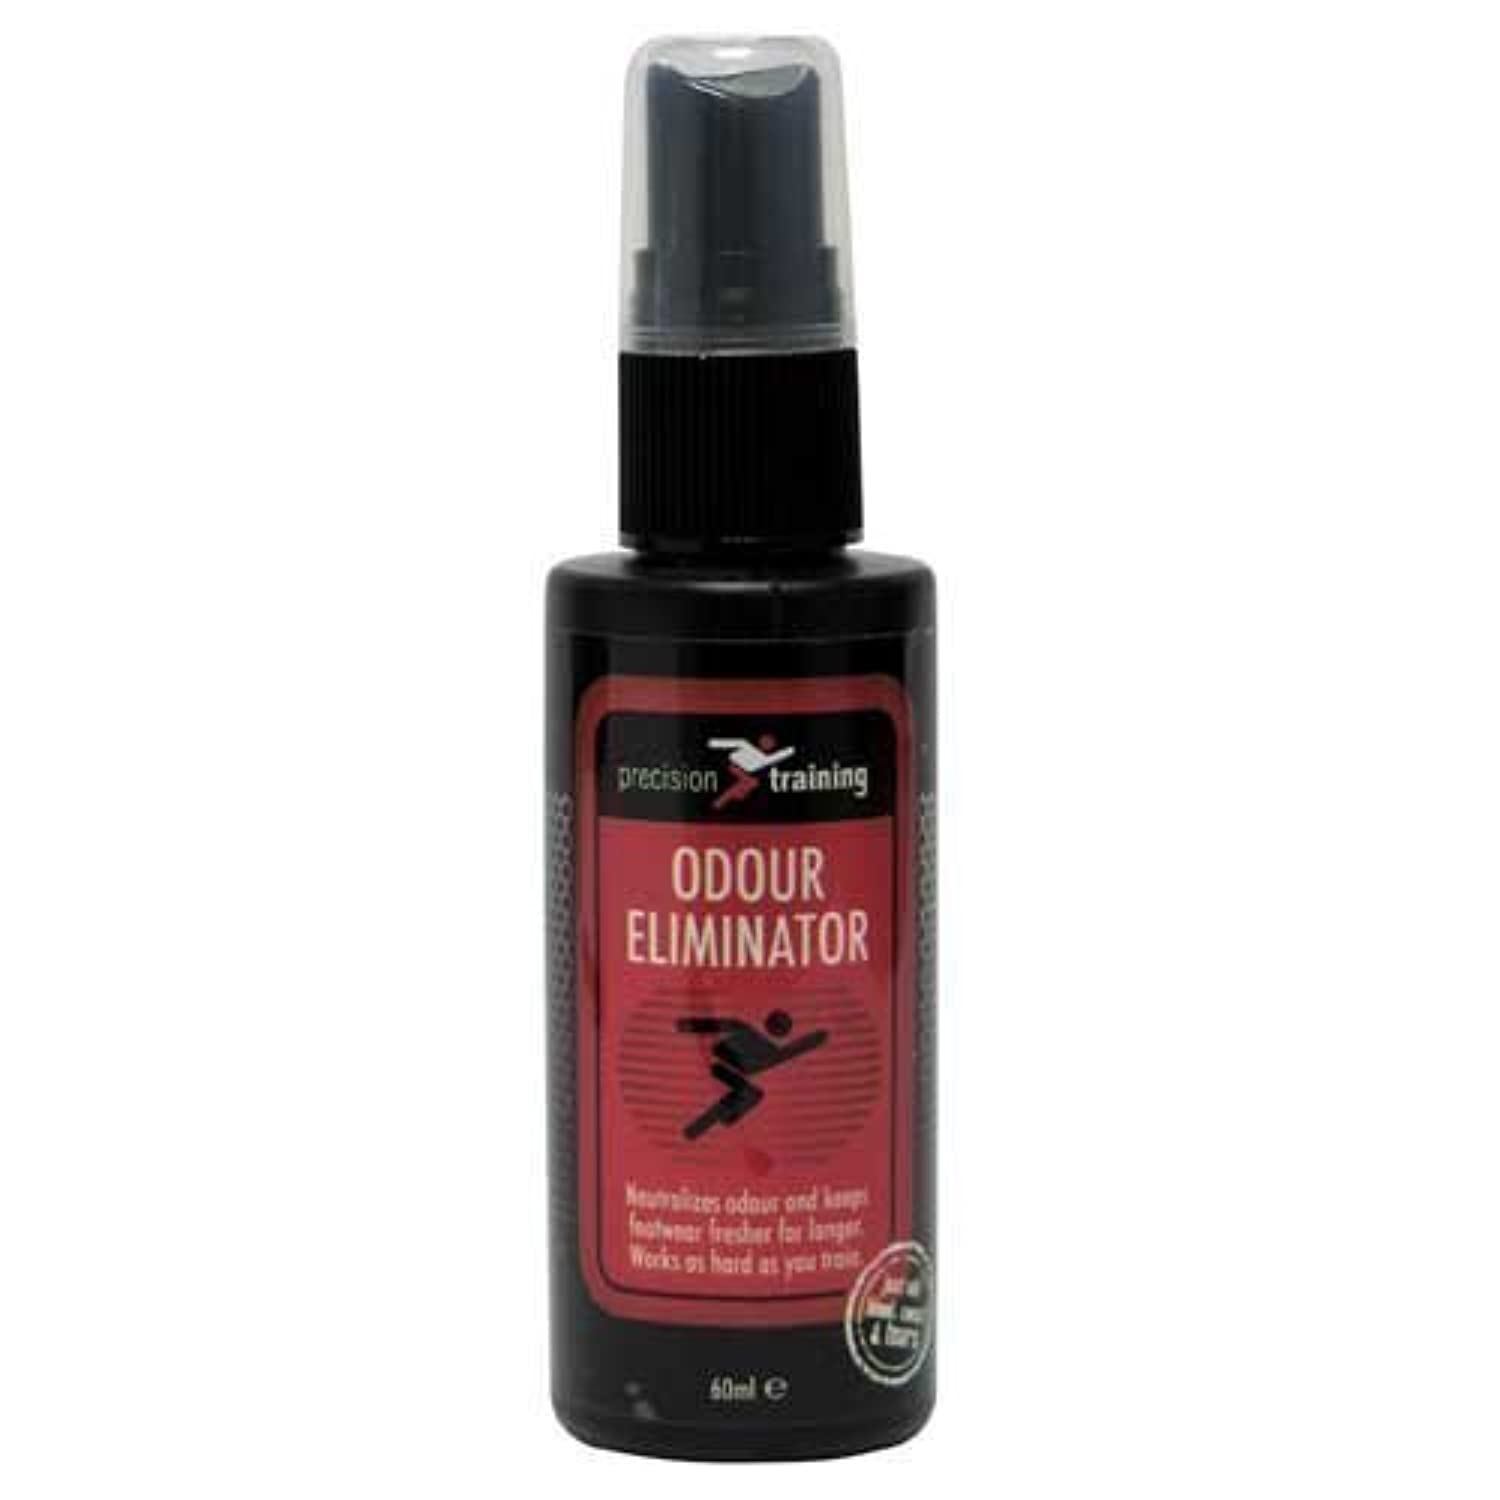 Precisionトレーニングスポーツ60 ml Footwear汗Odour Eliminator by Precisonトレーニング